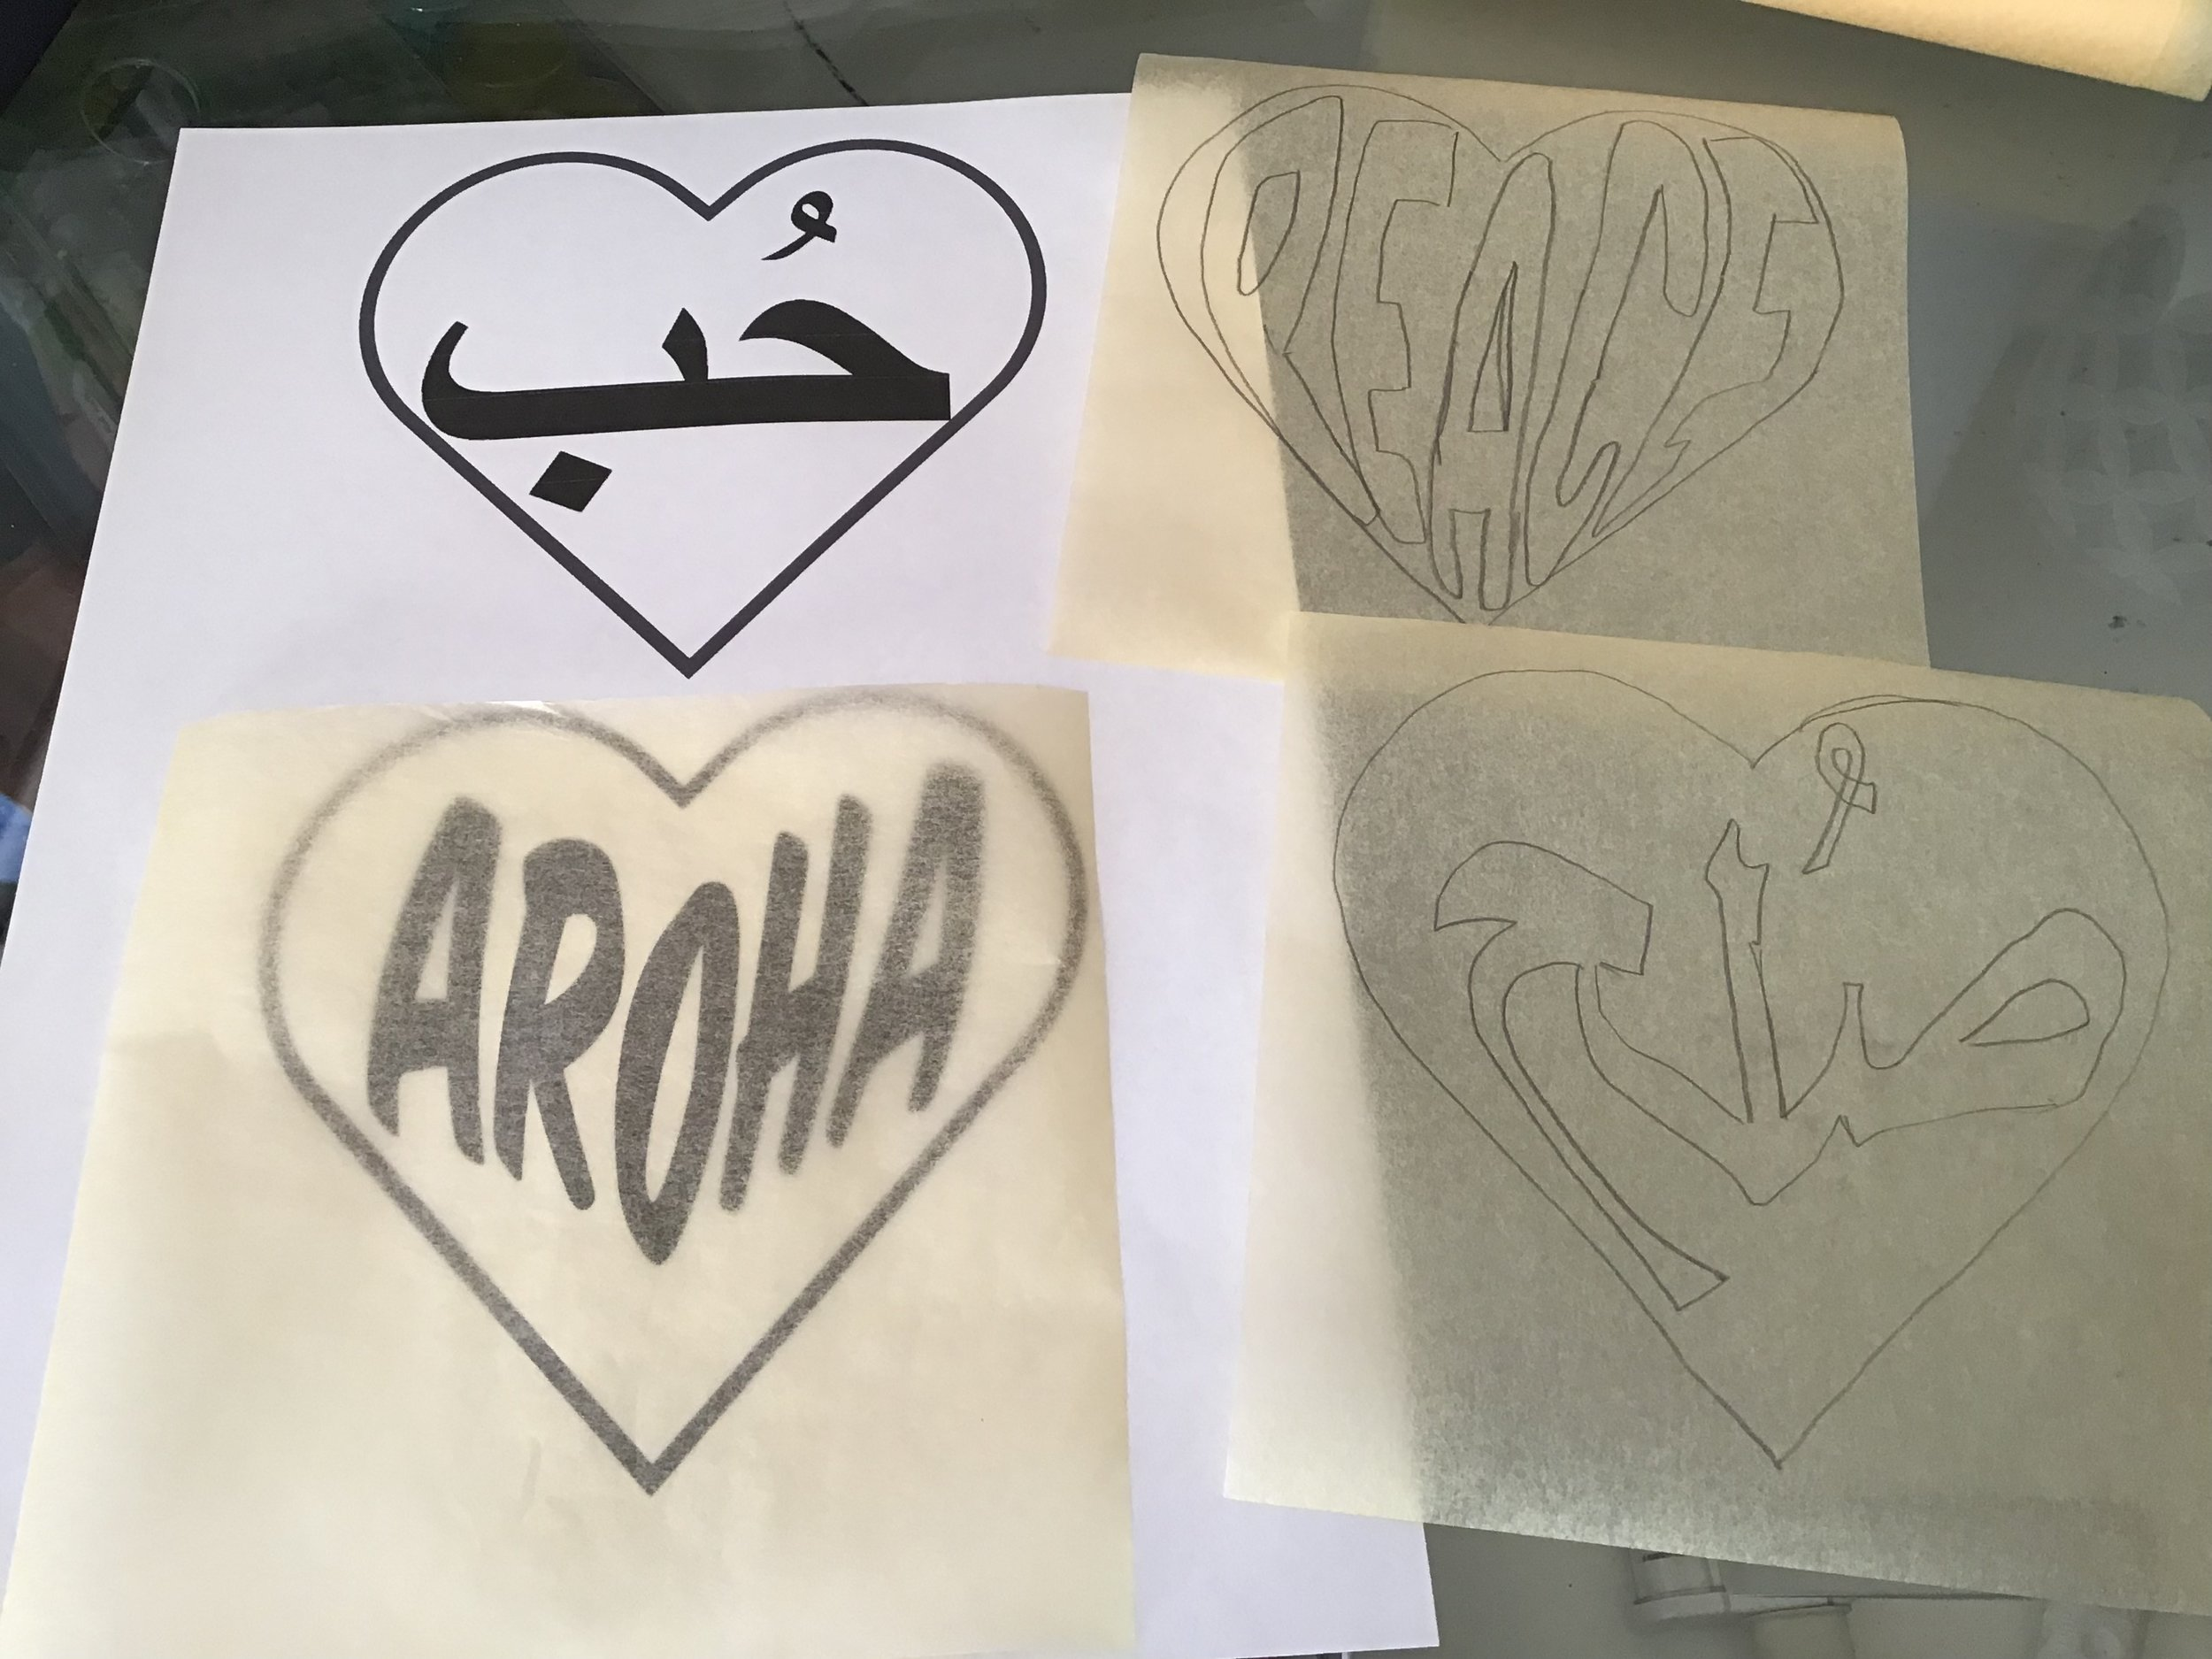 warped text being transferred to paper for quilting: Aroha = love